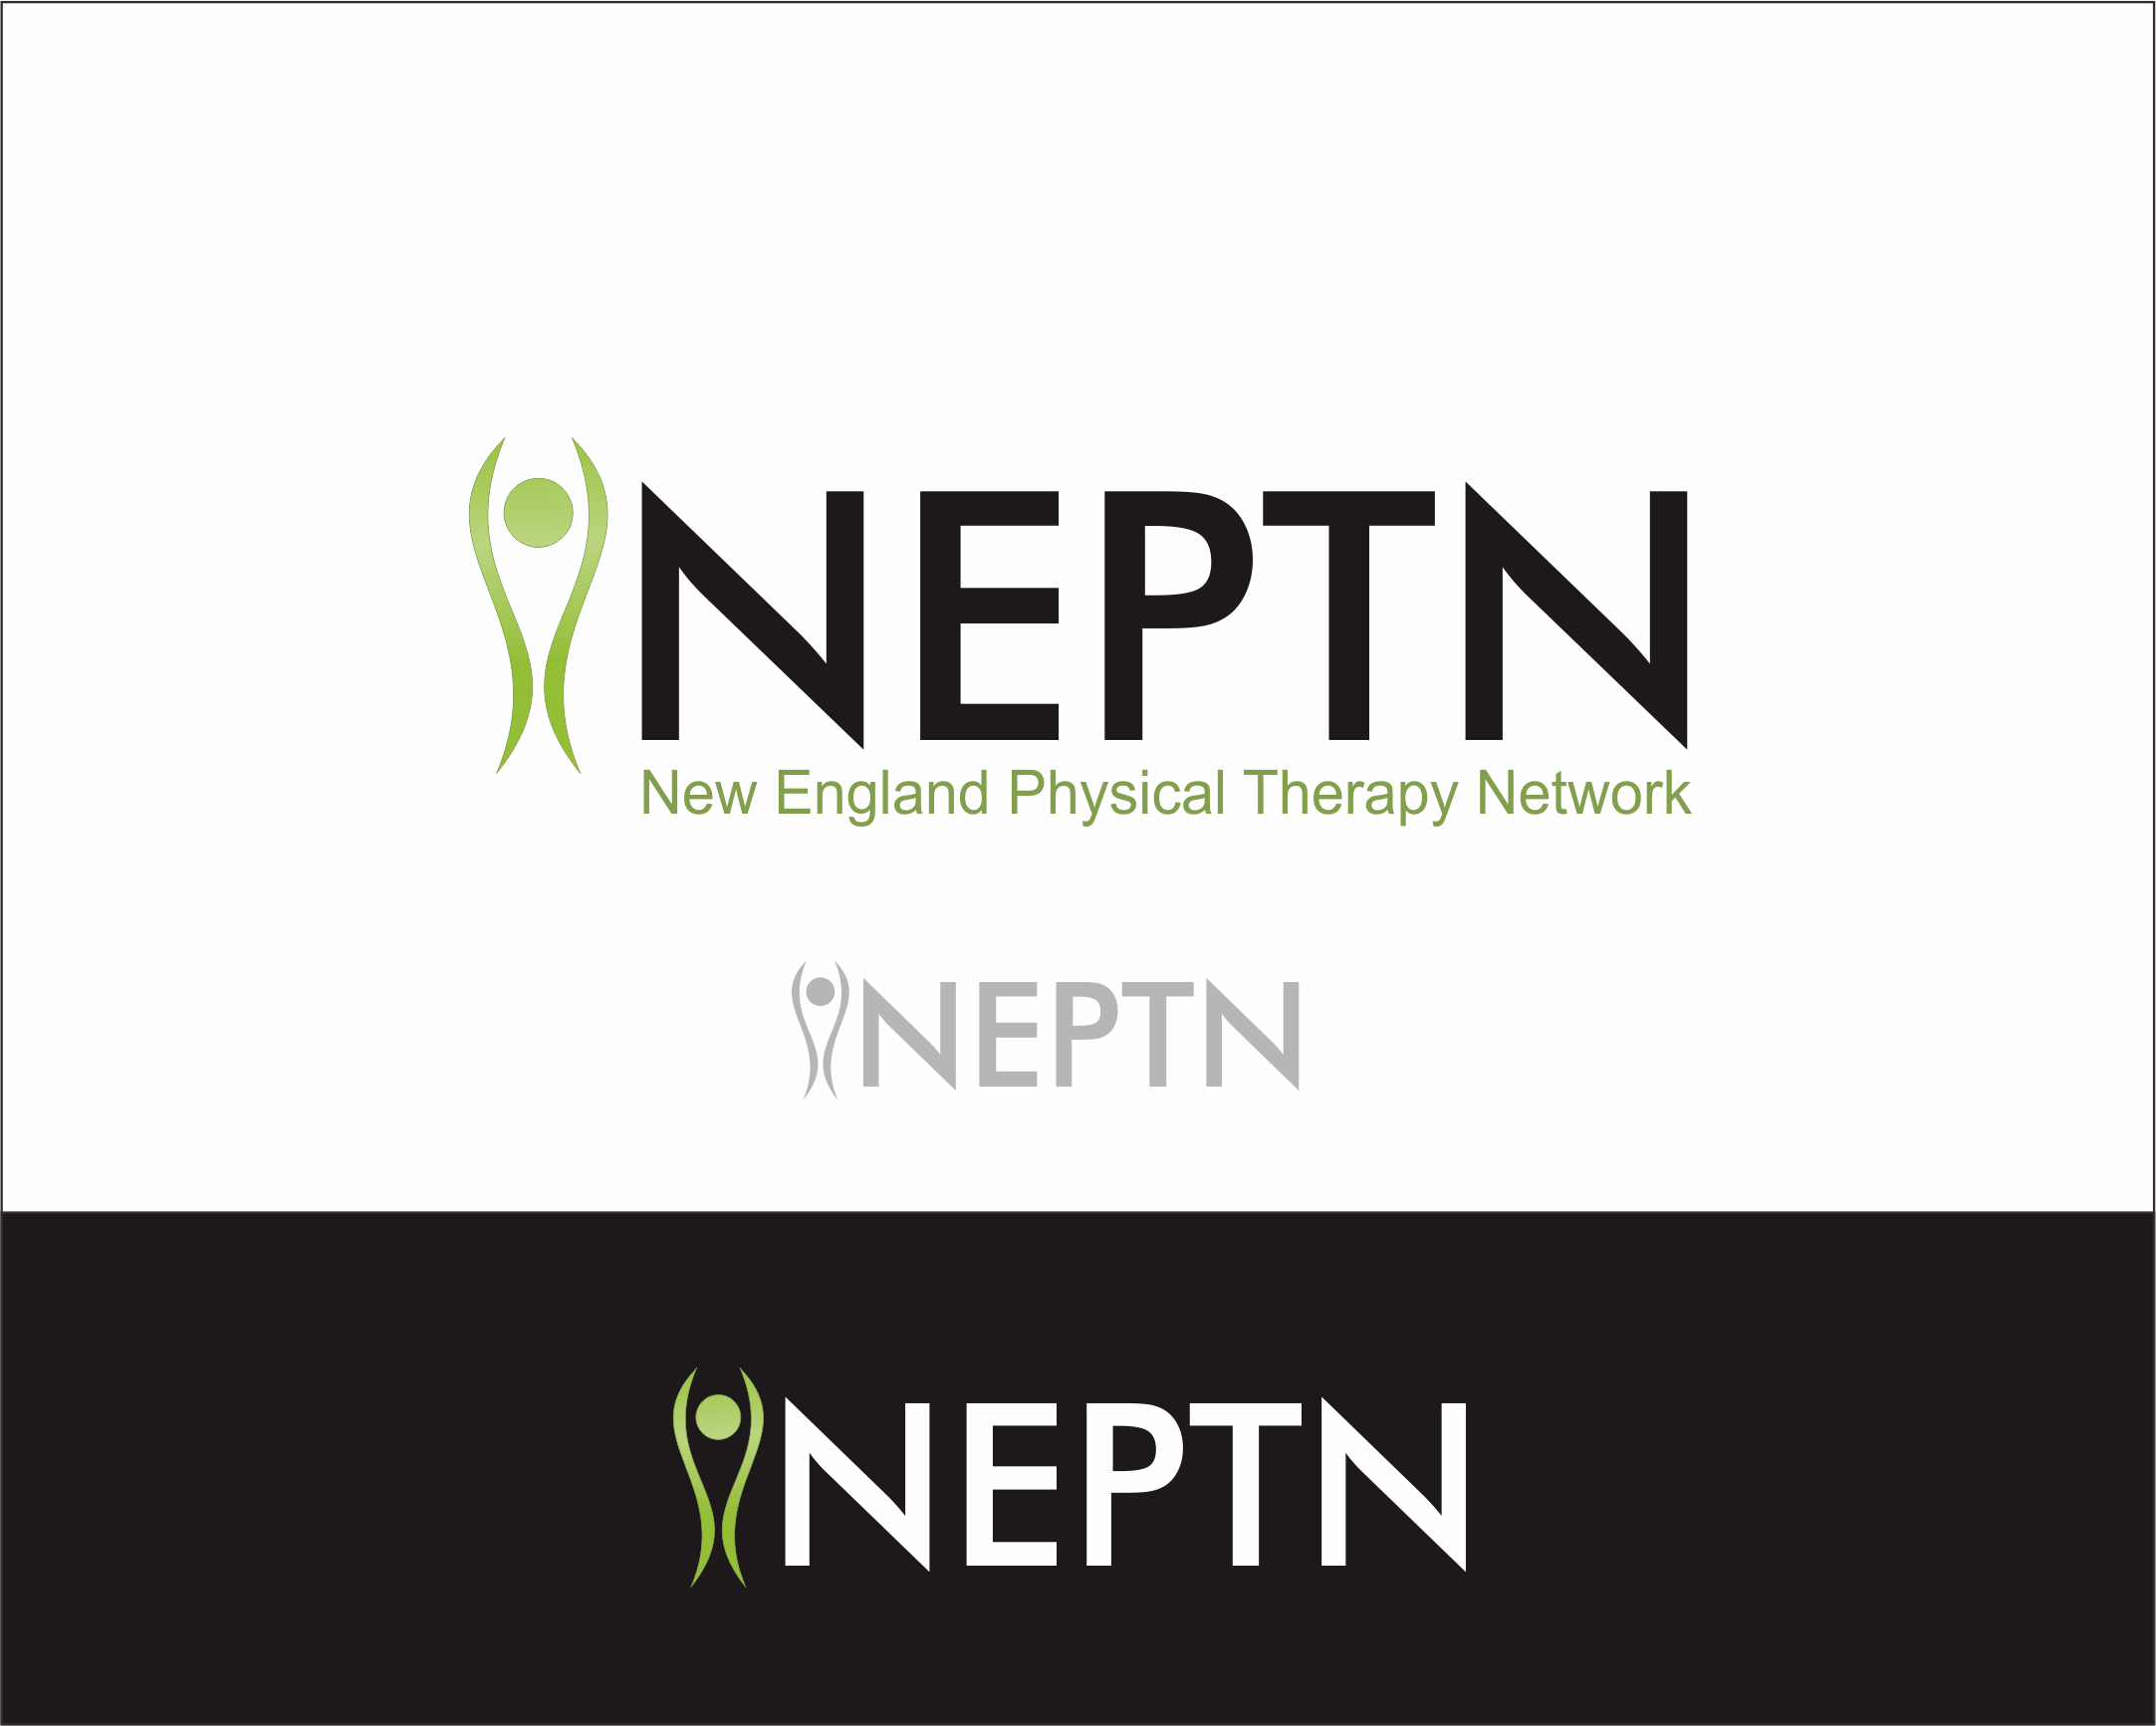 Logo Design by Achmad Zakiyuddin - Entry No. 45 in the Logo Design Contest Fun Logo Design for NEPTN - New England Physical Therapy Network.